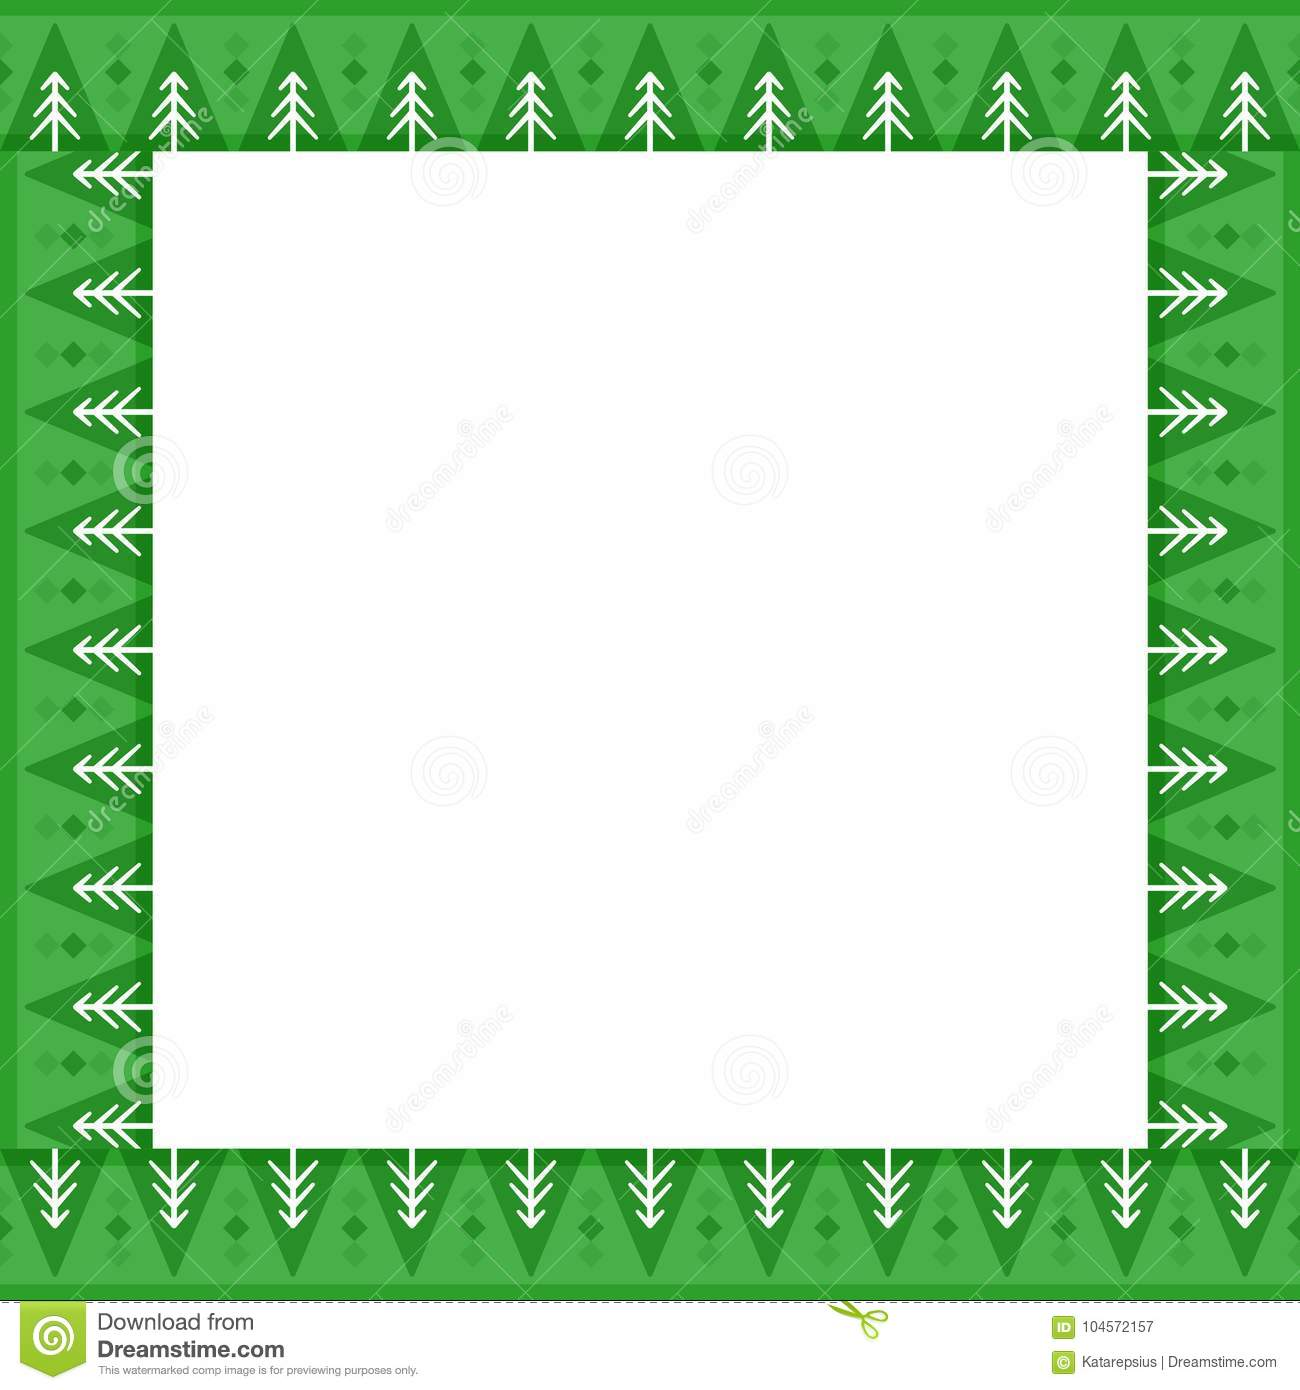 cute christmas or new year border with fir trees on green background